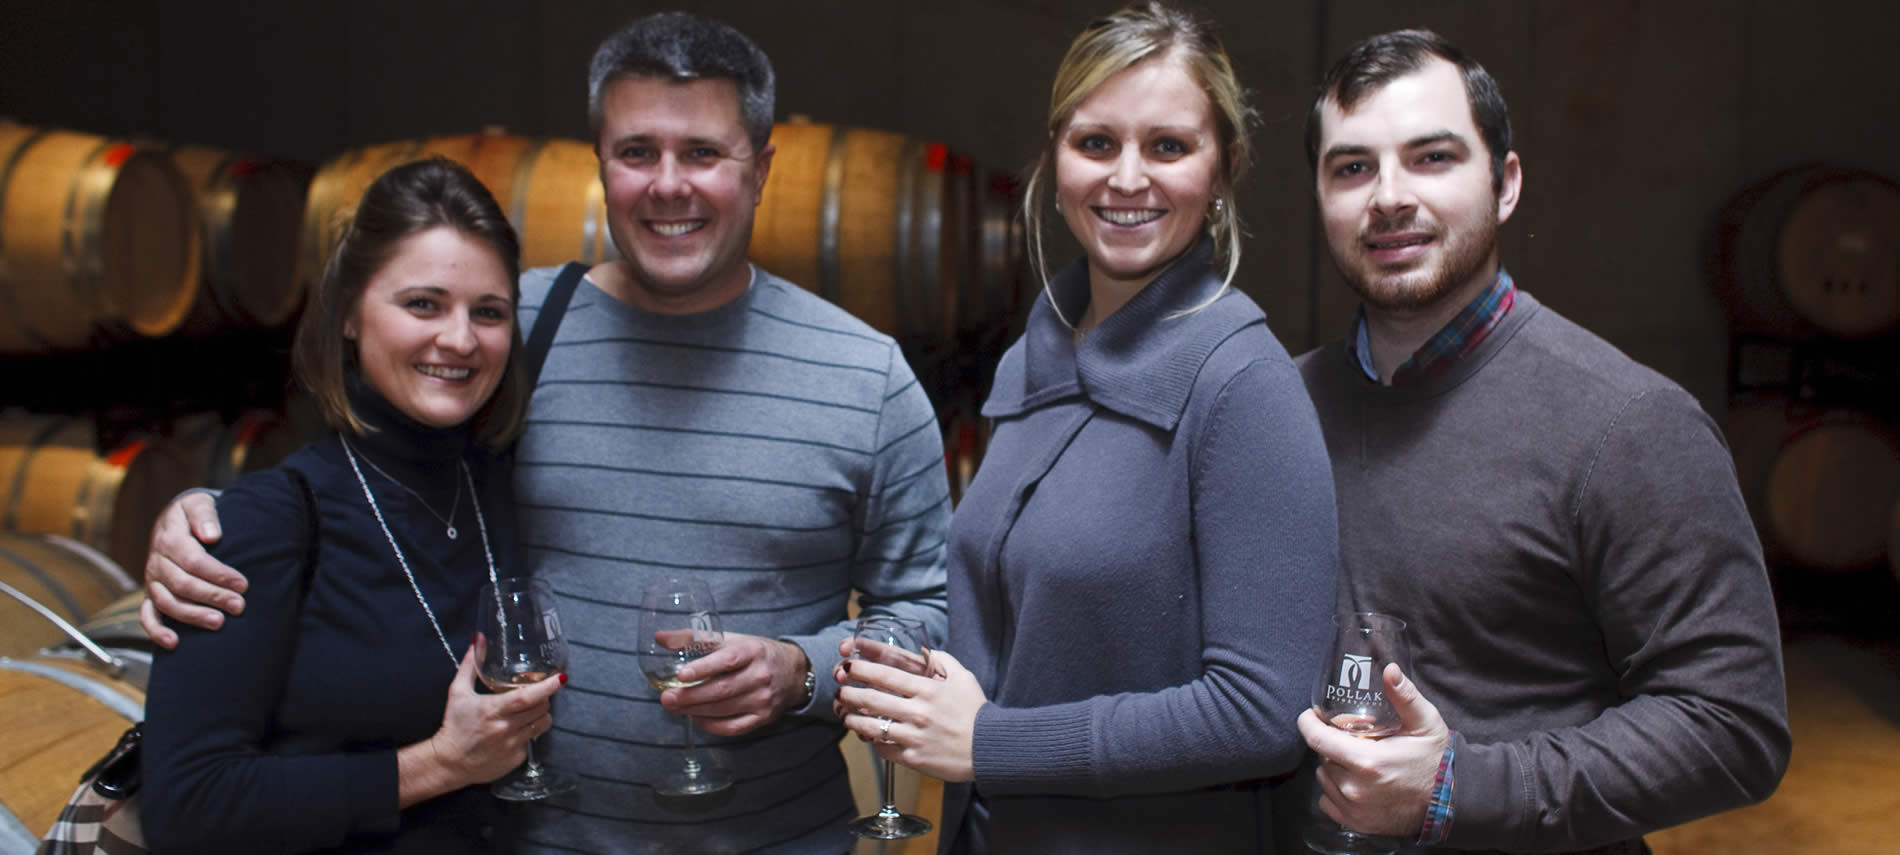 Tasting in a picturesque barrel room creates an enjoyable atmosphere